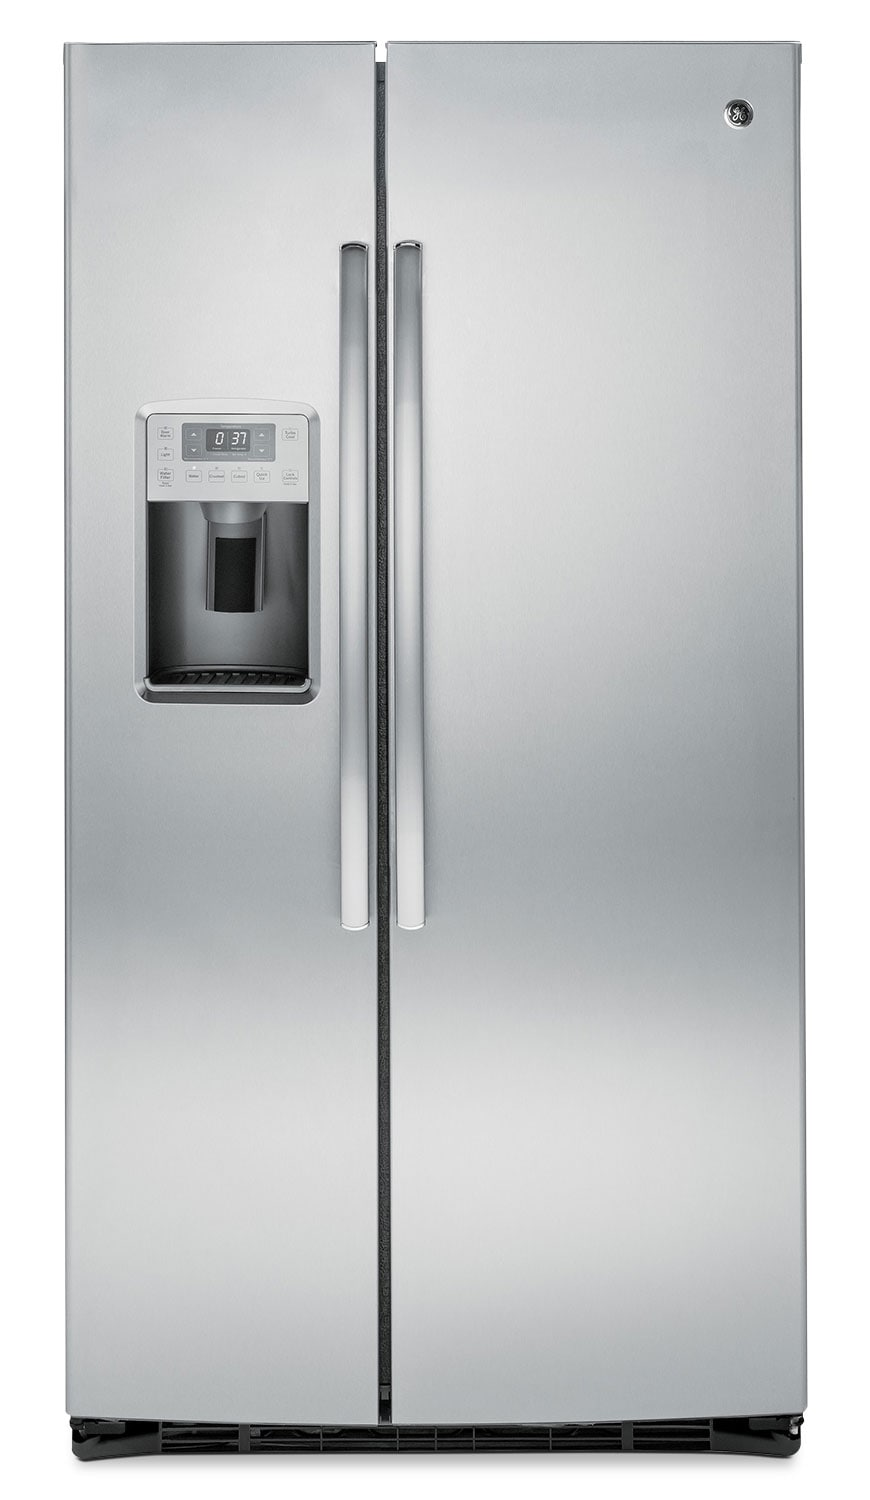 Refrigerators and Freezers - GE 25.4 Cu. Ft. Side-by-Side Refrigerator with Water Dispenser - Grey